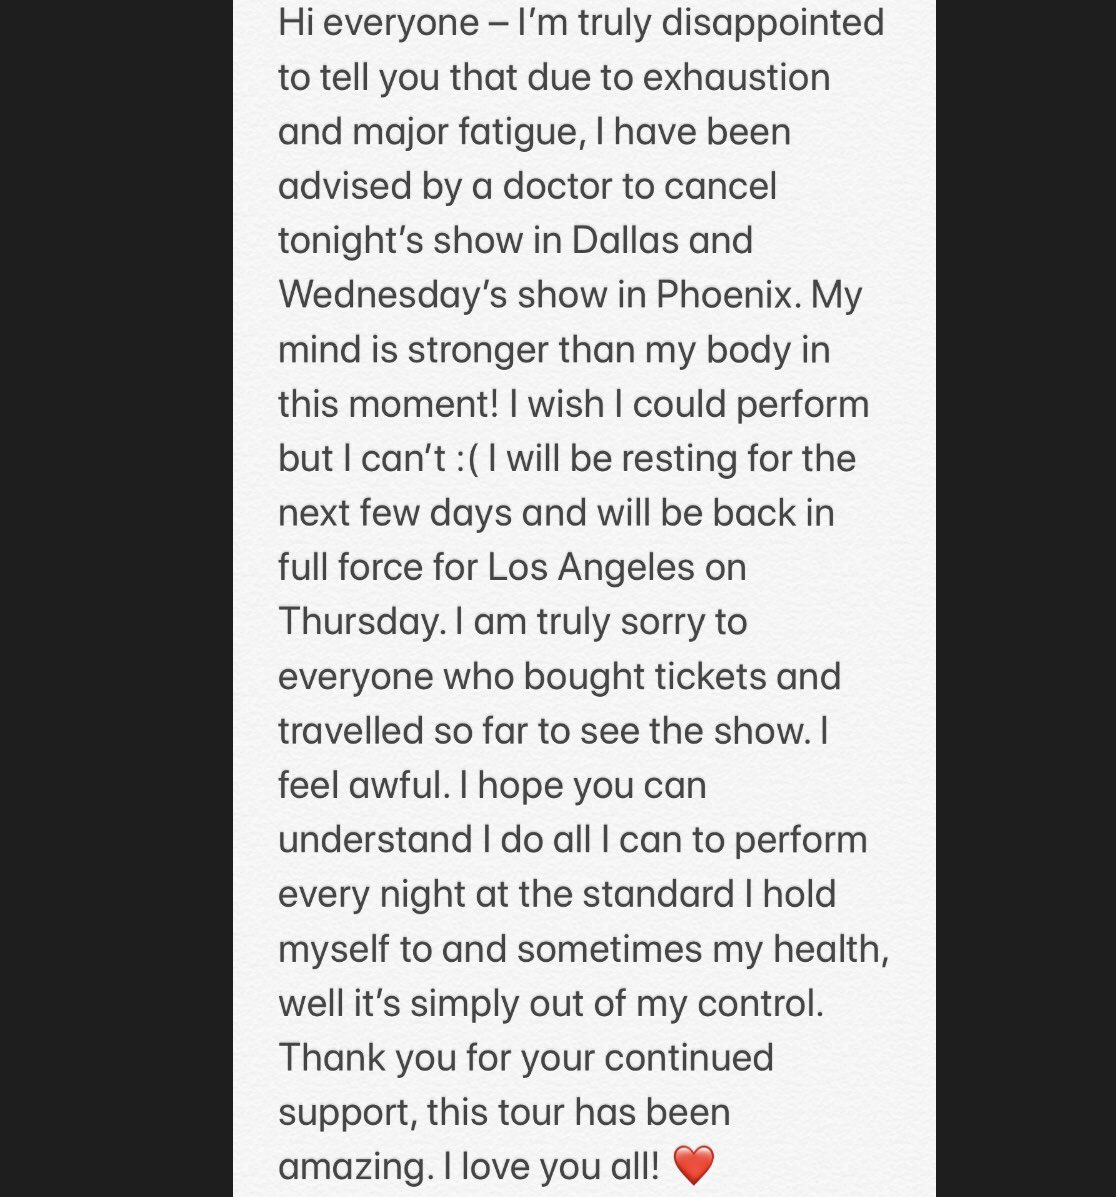 To all my heartbeats in Dallas and Phoenix ❤️ https://t.co/BqCAk24KnO